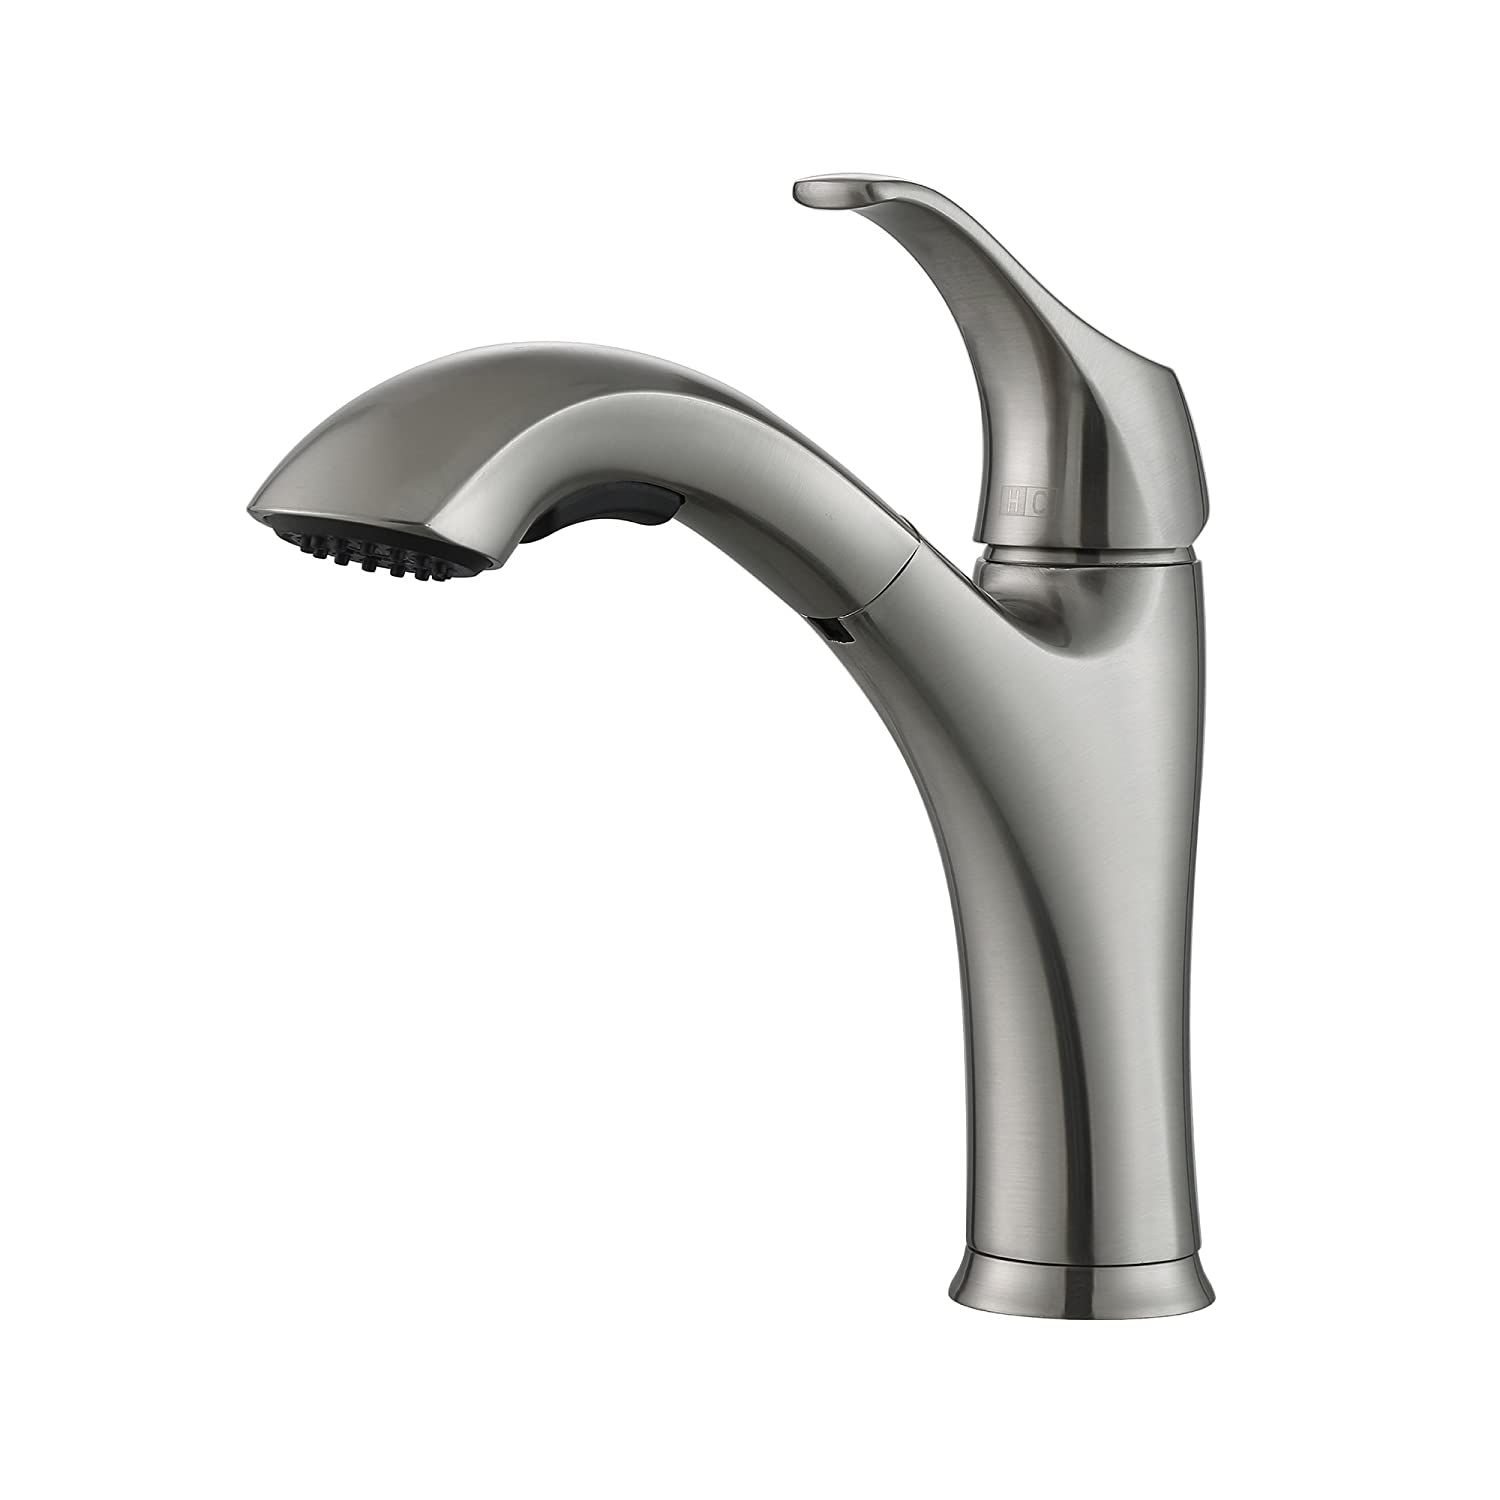 Kraus KPF 2250 Pull Out Kitchen Faucet Pros And Cons